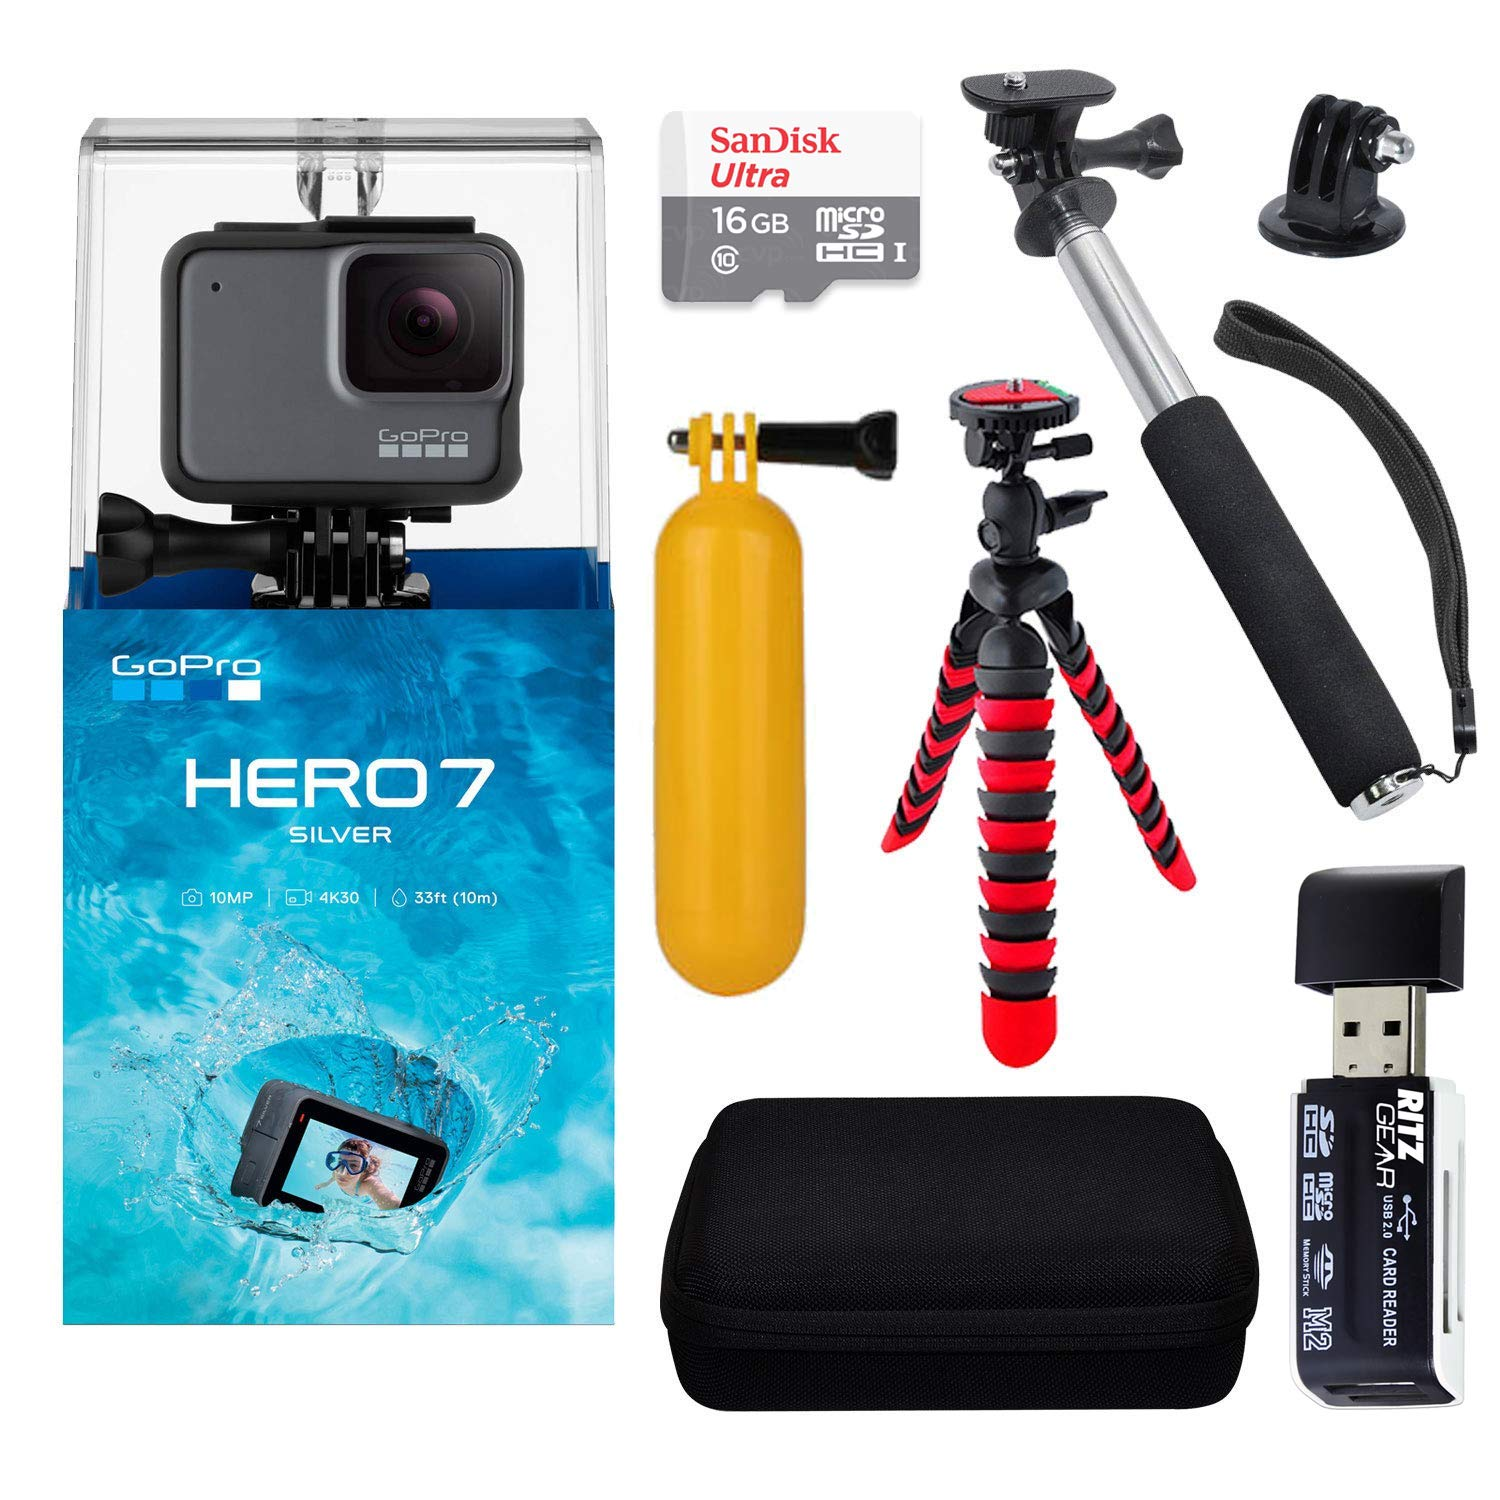 """GoPro Hero7 Silver Bundle with Handheld Monopod, 12"""" Flexi-Tripod, Float Handle, GoPro Case, Memory Card Reader, Tripod Adapter, and Sandisk 16GB MicroSDHC Memory Card"""